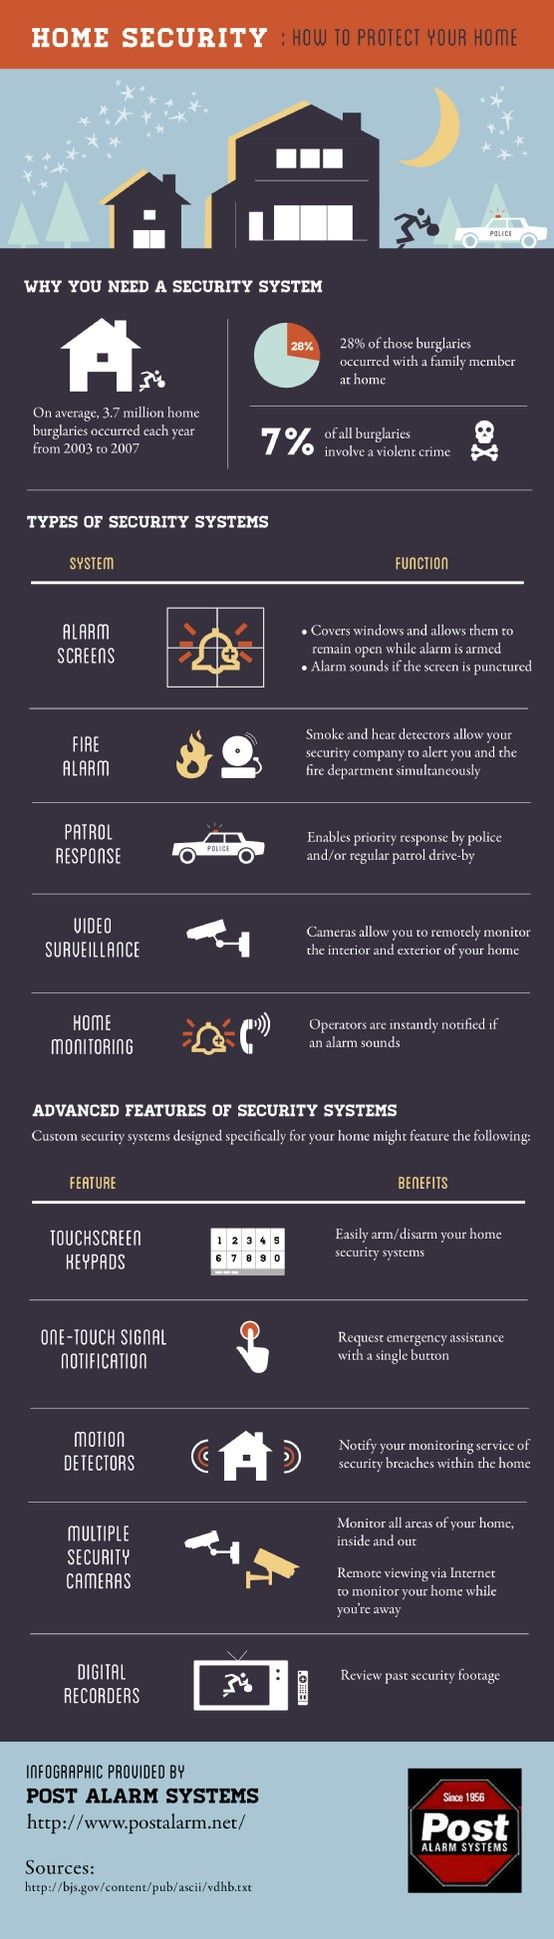 Video surveillance makes it easy to monitor both the interior and exterior of a home. Check out this infographic from a security monitoring company to learn about alarm systems and how they protect your property.